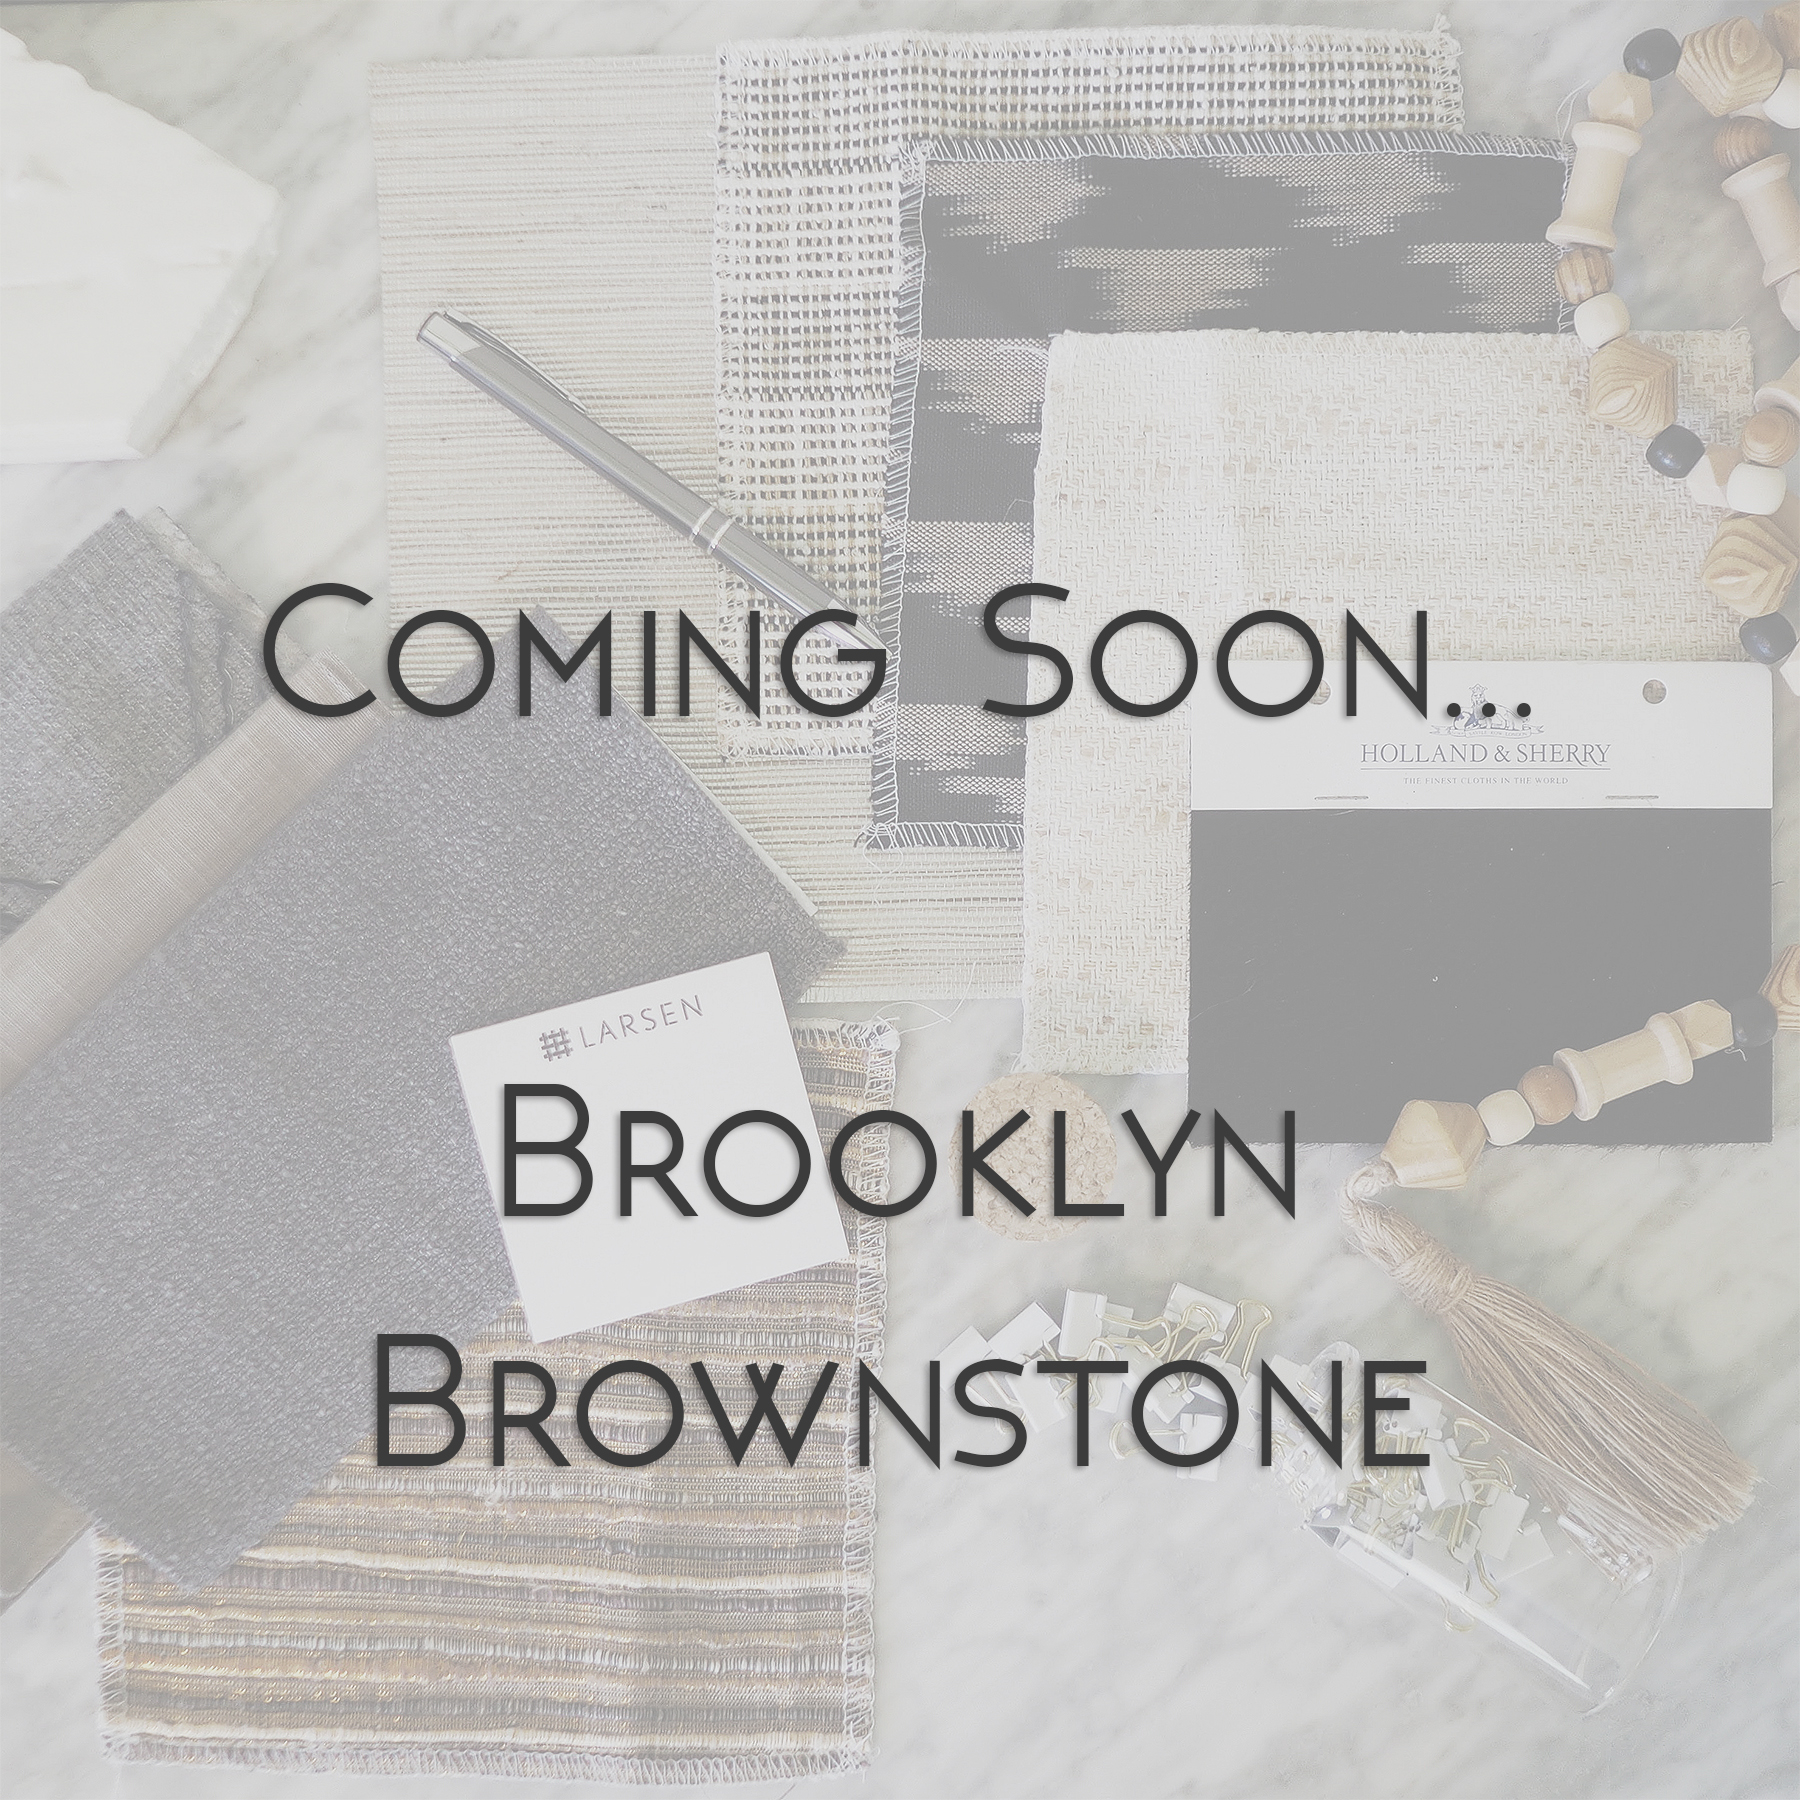 Coming Soon - Brooklyn Brownstone.jpg